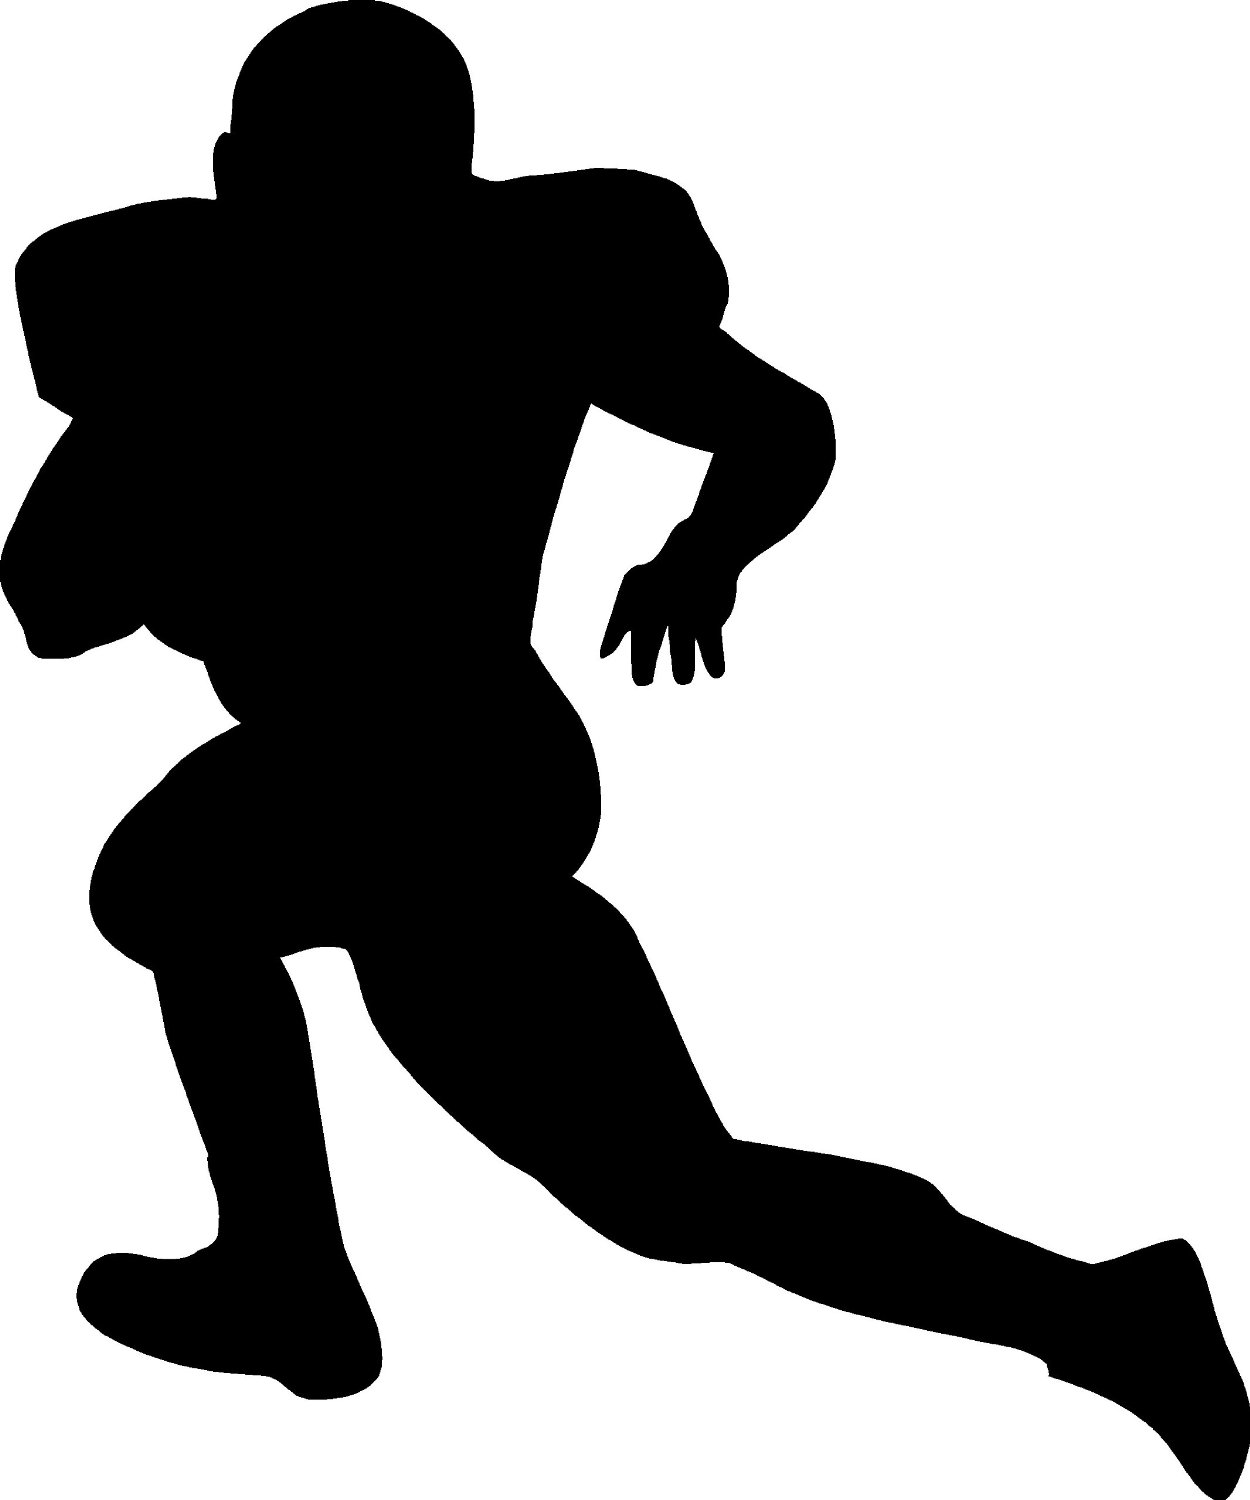 1250x1500 Football Players Silhouette Clipart